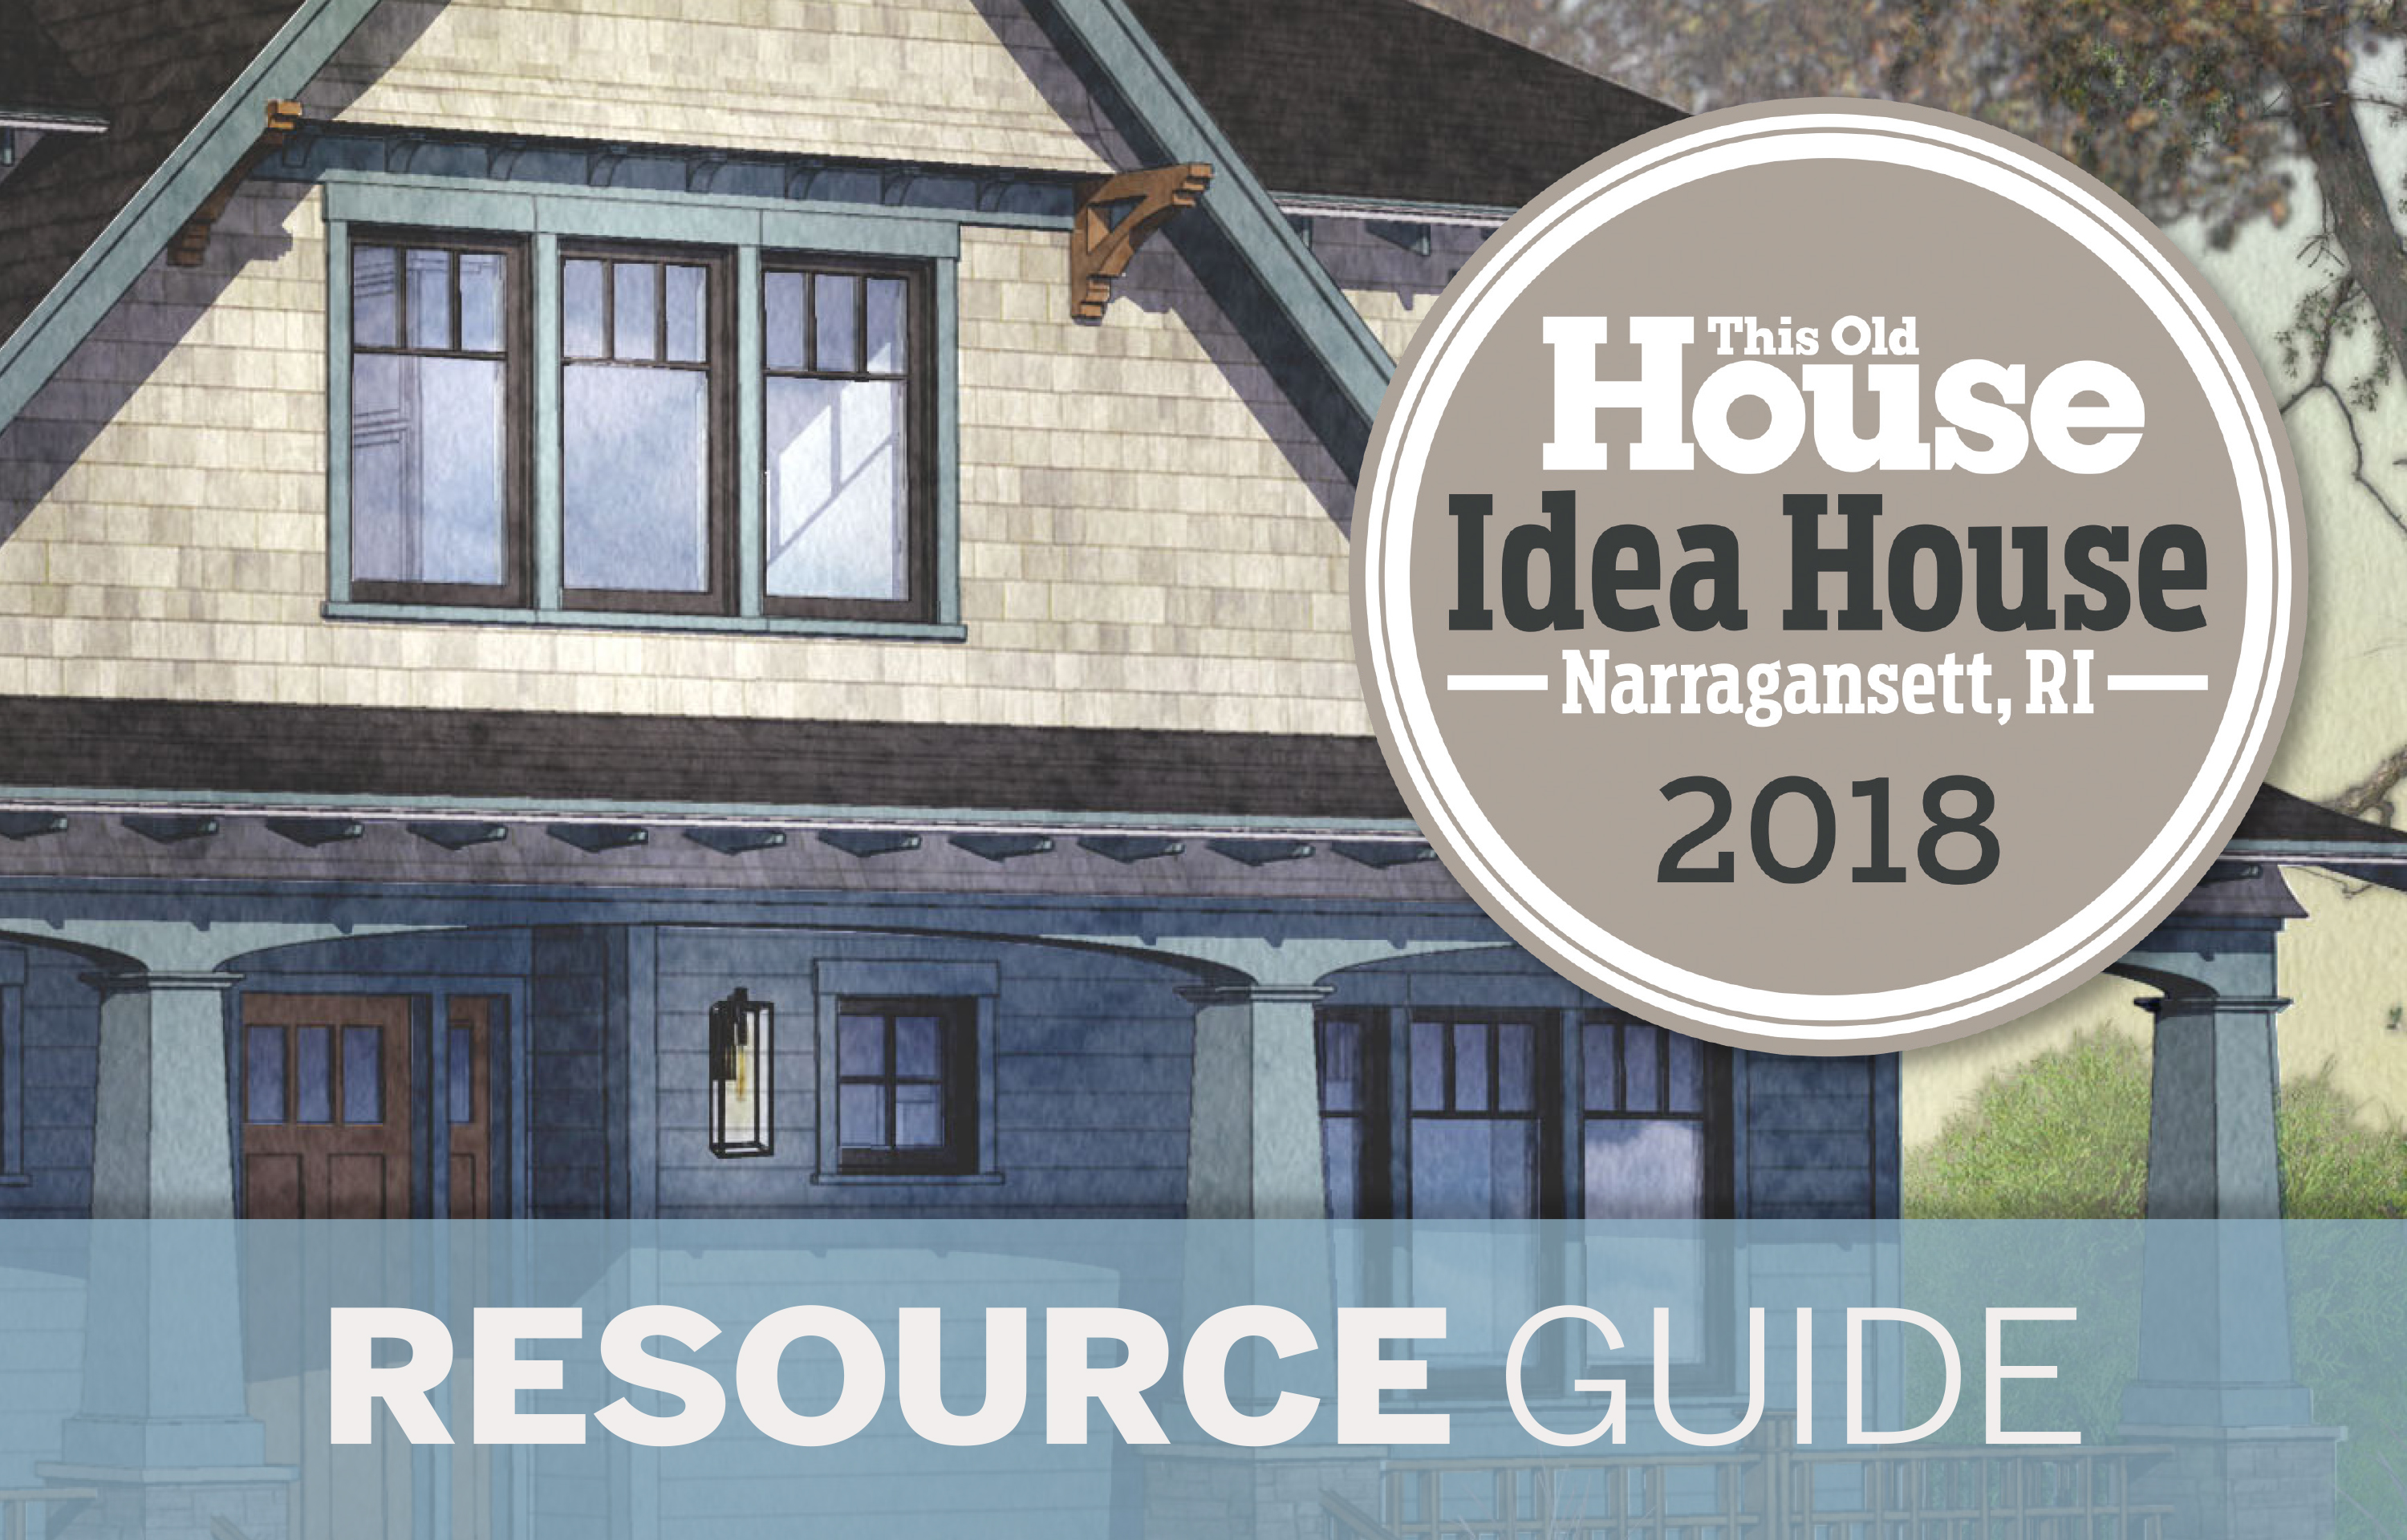 2018 Idea House resource guide